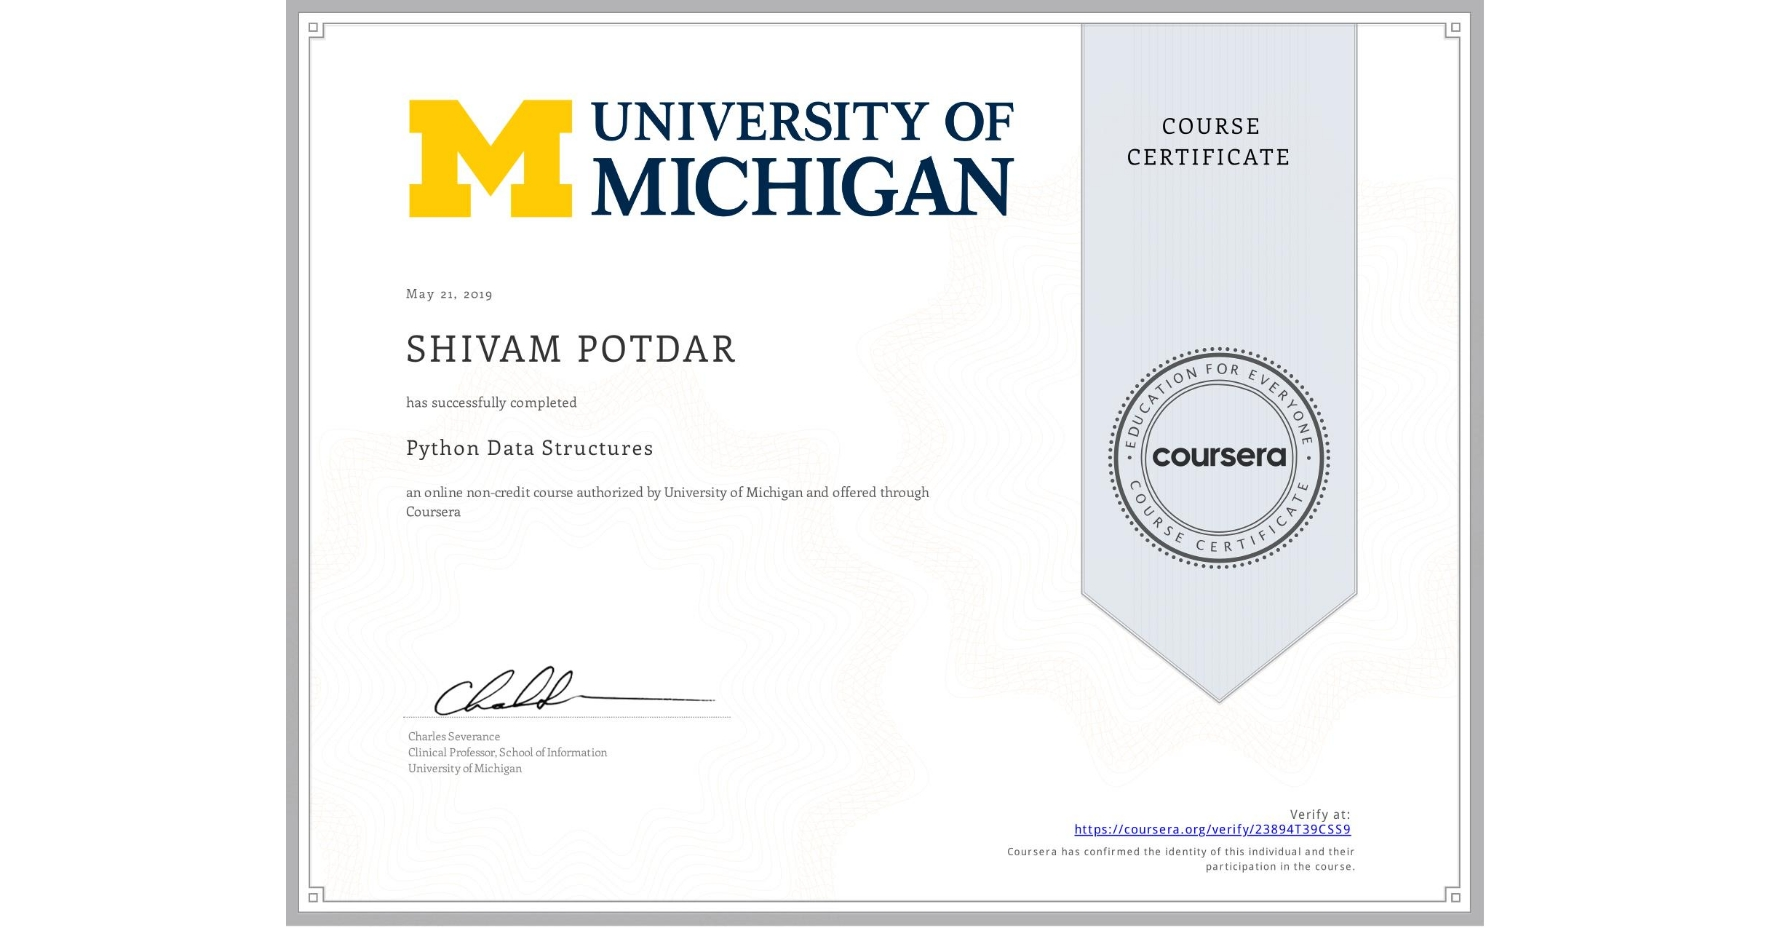 View certificate for SHIVAM POTDAR, Python Data Structures, an online non-credit course authorized by University of Michigan and offered through Coursera